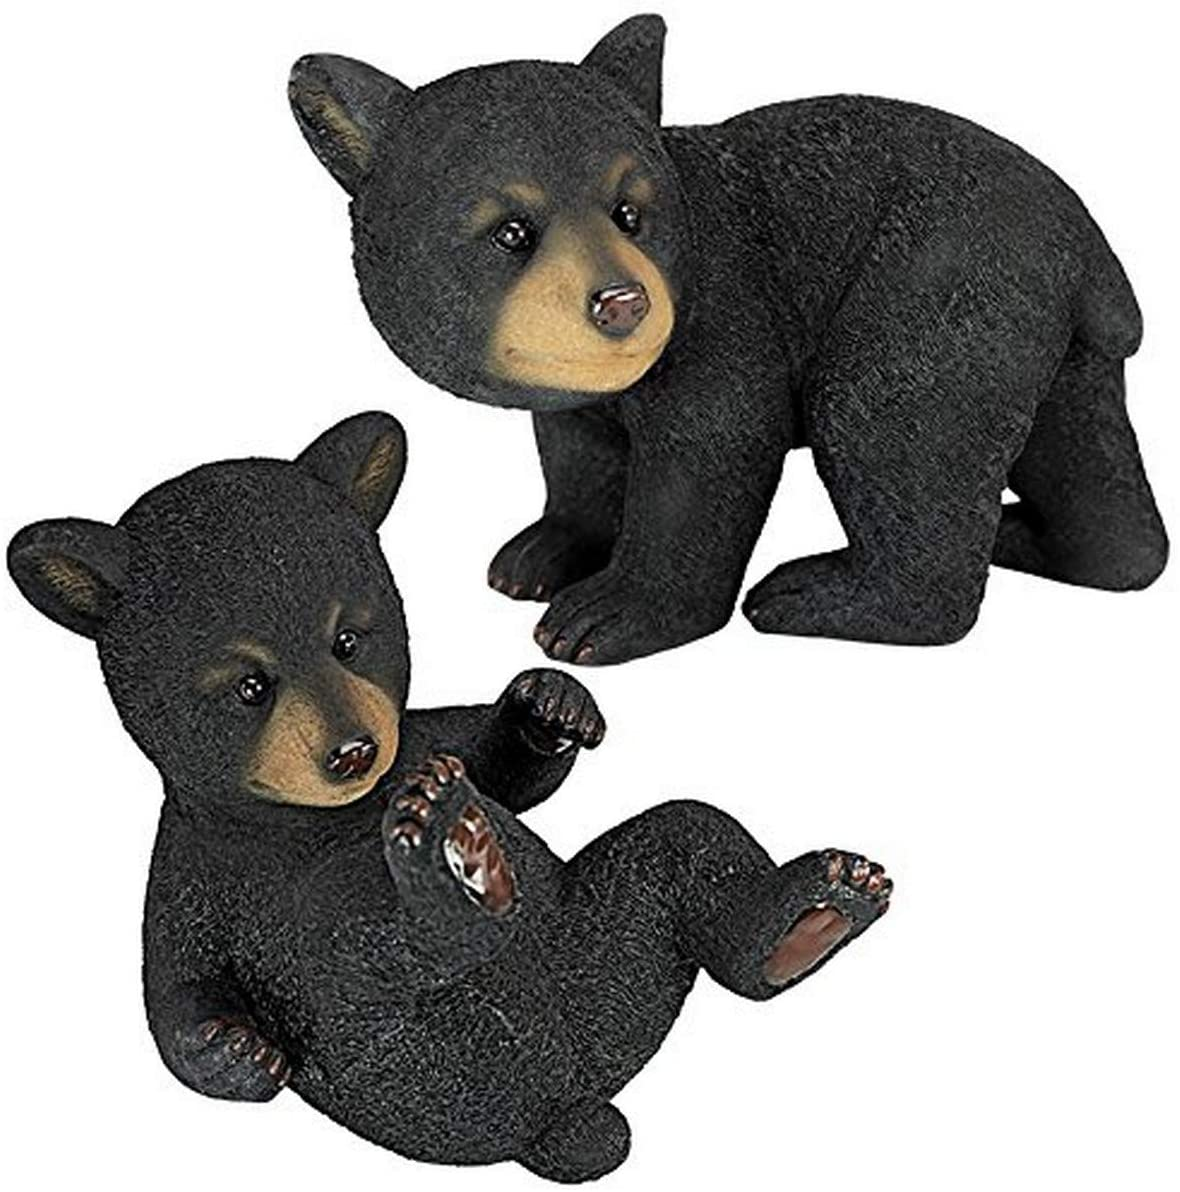 Design Toscano QM92592800 Roly-Poly Bear Cub Statue, Set of 2, Black : Collectible Figurines : Garden & Outdoor